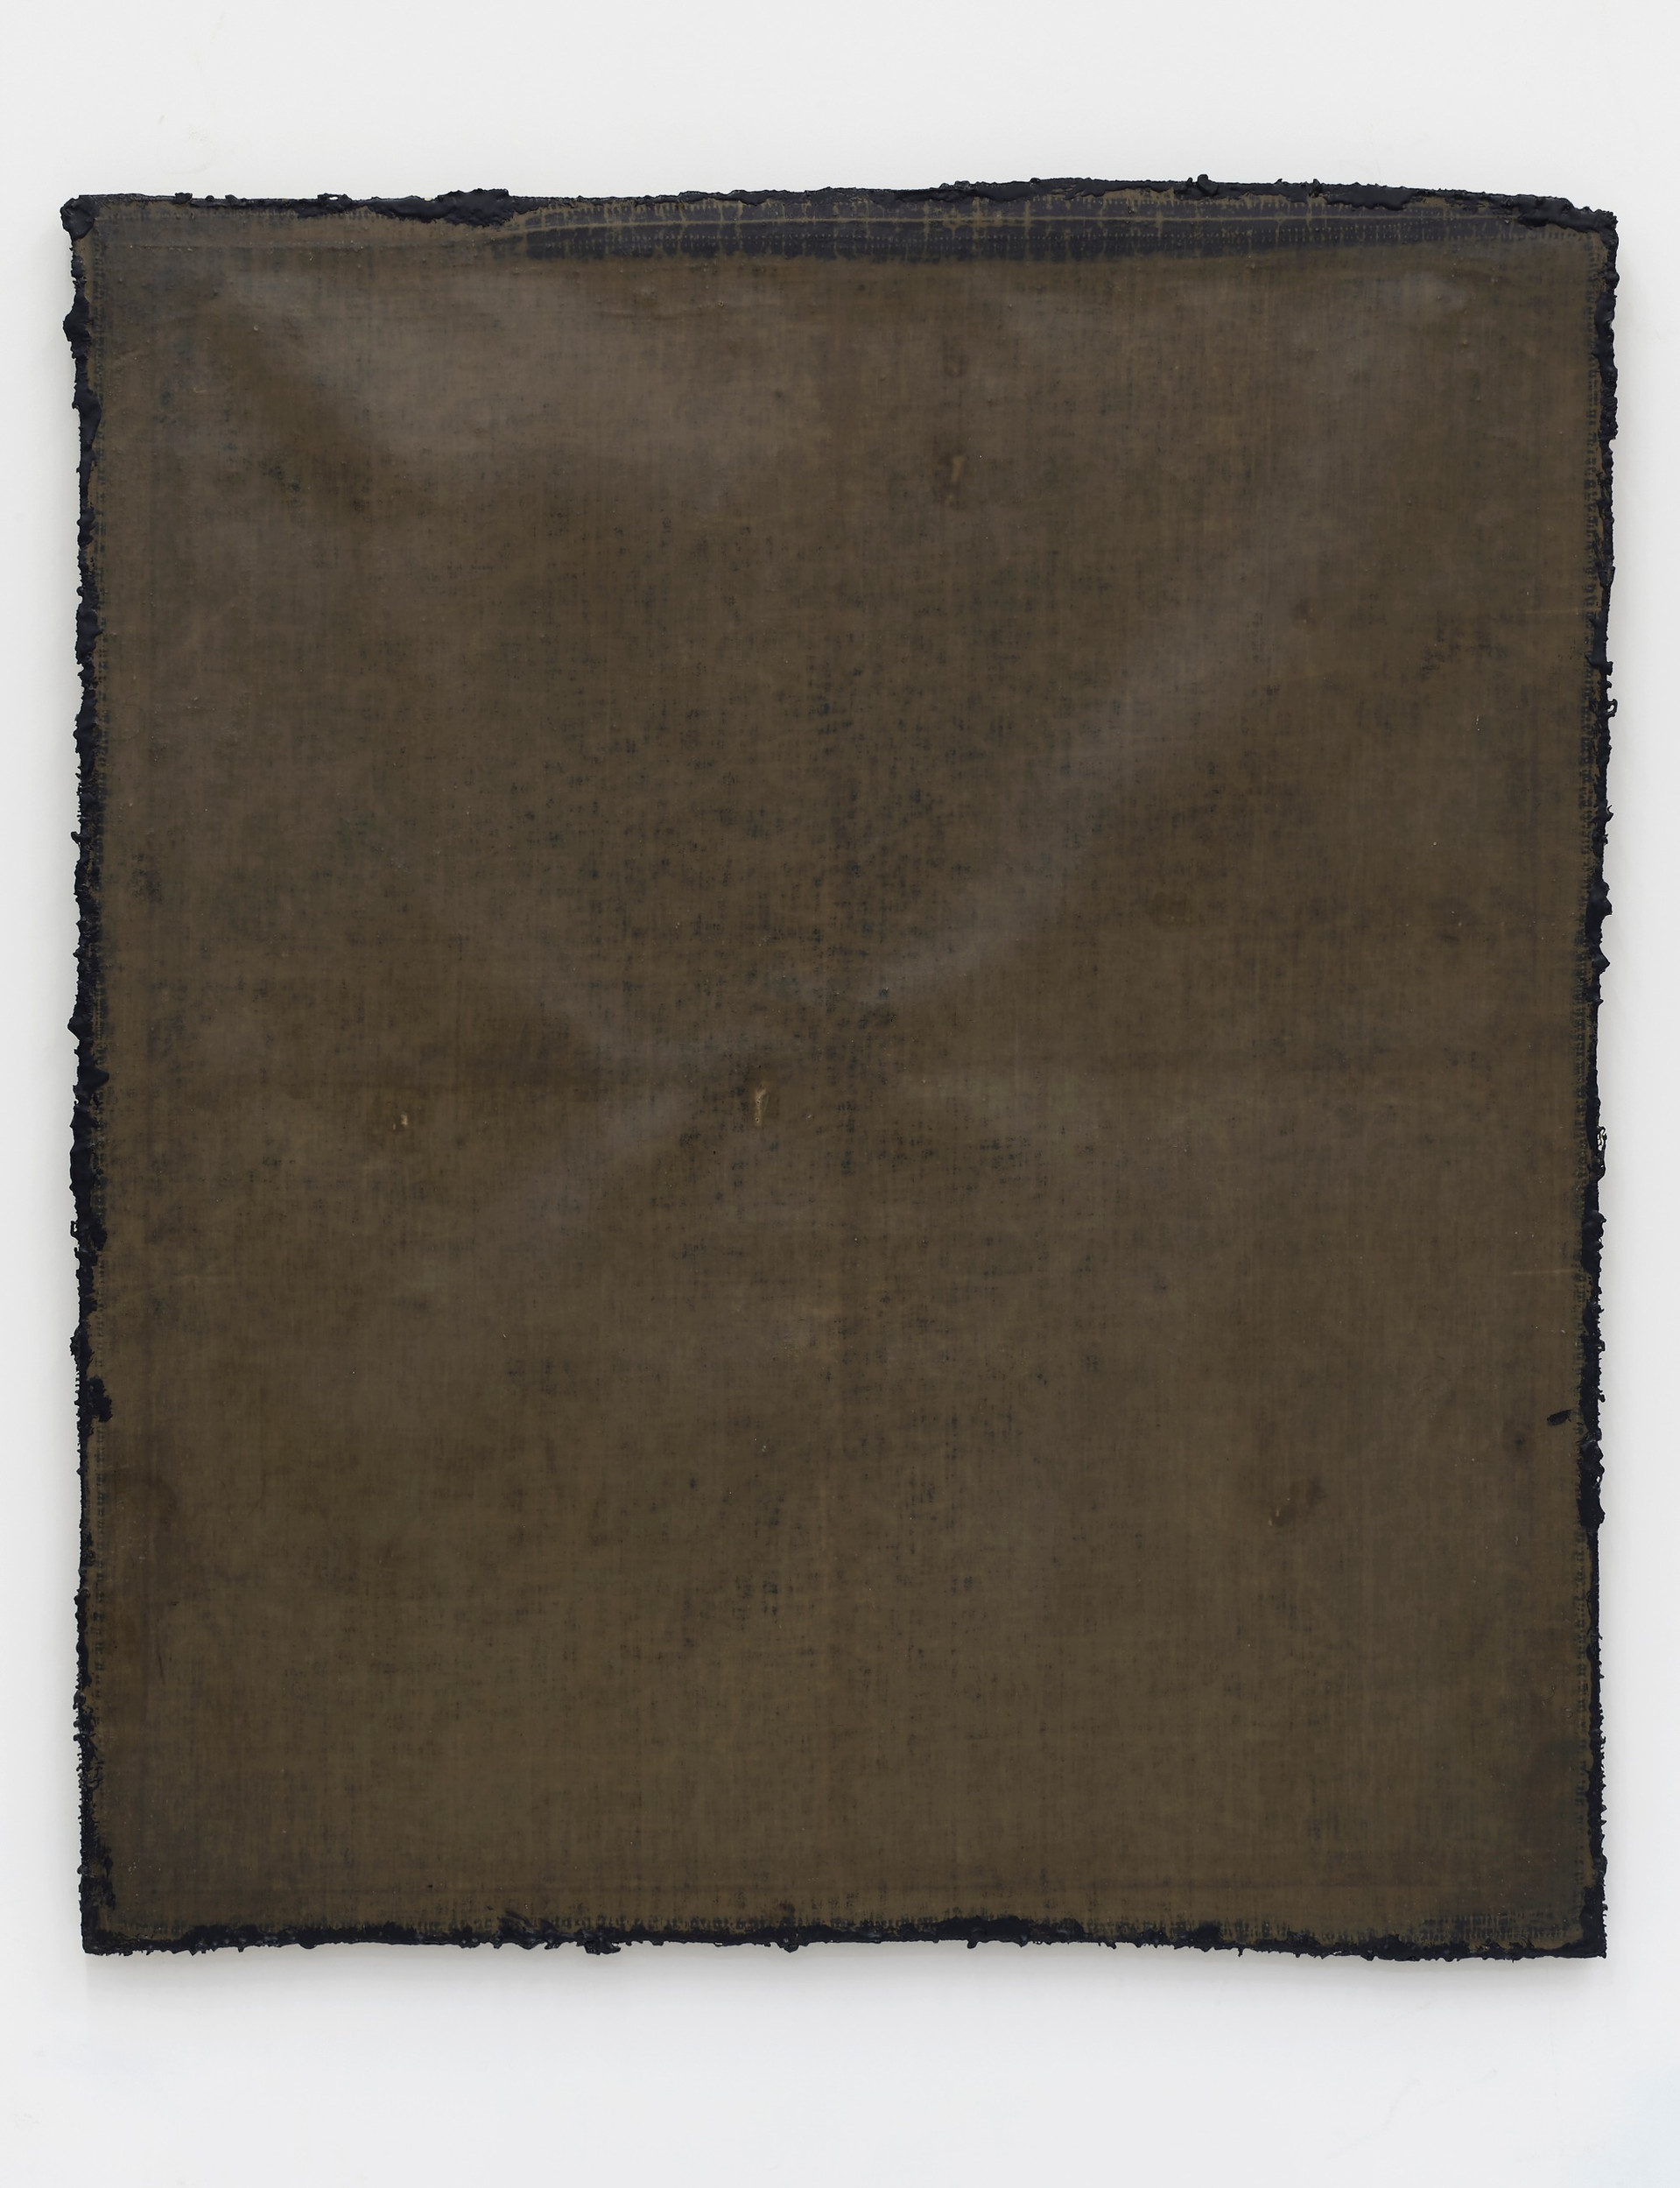 Helmut Lang  network #3, 2019 Cotton, wax, resin, and tar on canvas  61 1/2 x 53 1/4 x 1 1/2 inches